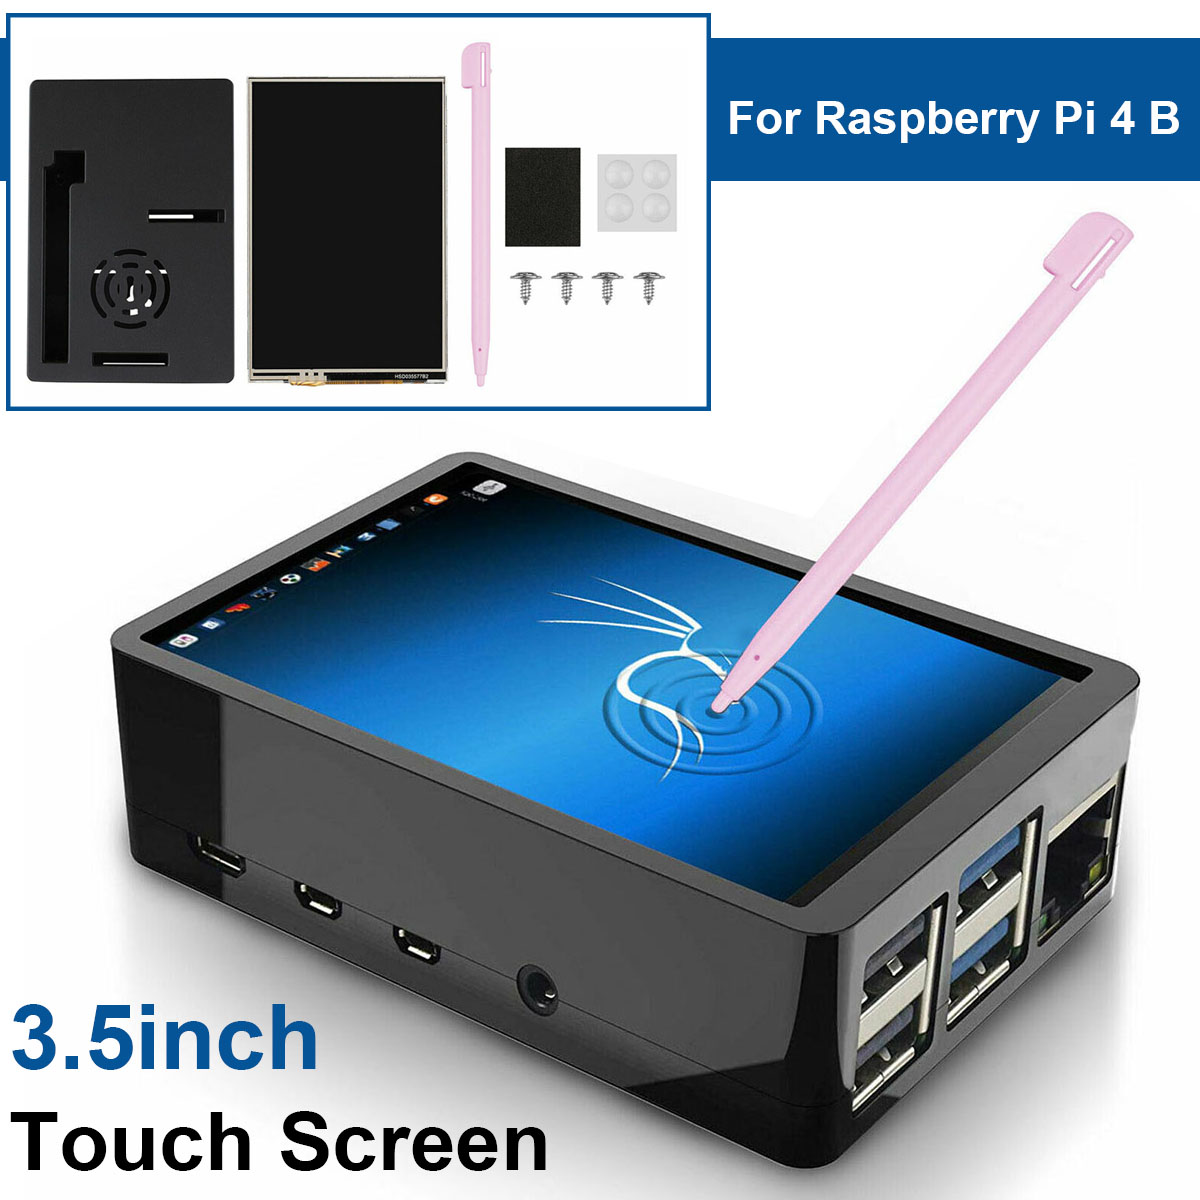 3.5inch TFT LCD Touch Screen + ABS Case + Touch Pen HDMI Input LCD Display Monitor Kit For Raspberry Pi 4 B